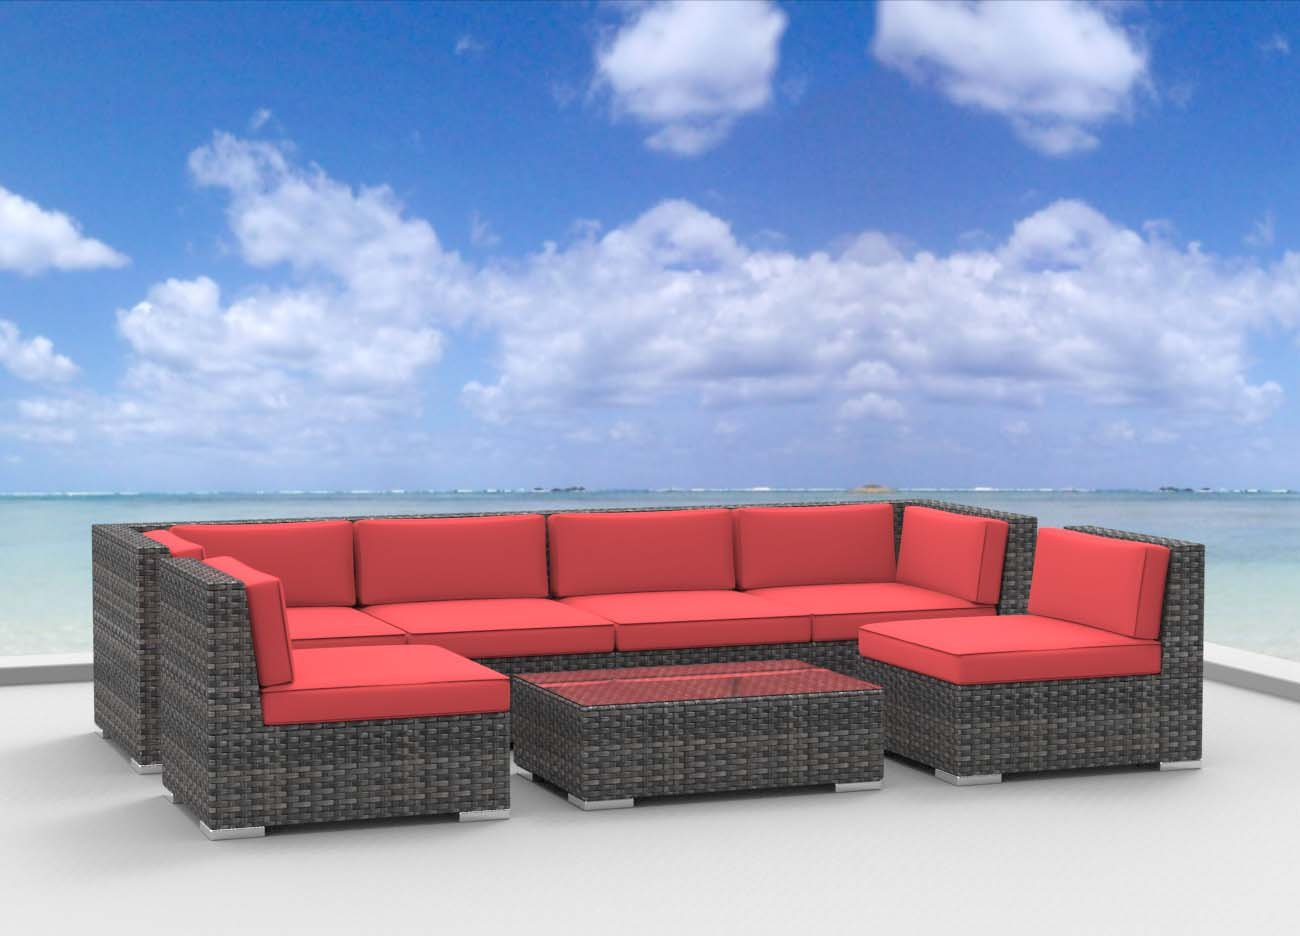 www.urbanfurnishing.net Urban Furnishing - OAHU 7pc Modern Outdoor Backyard Wicker Rattan Patio Furniture Sofa Sectional Couch Set - Coral Red at Sears.com